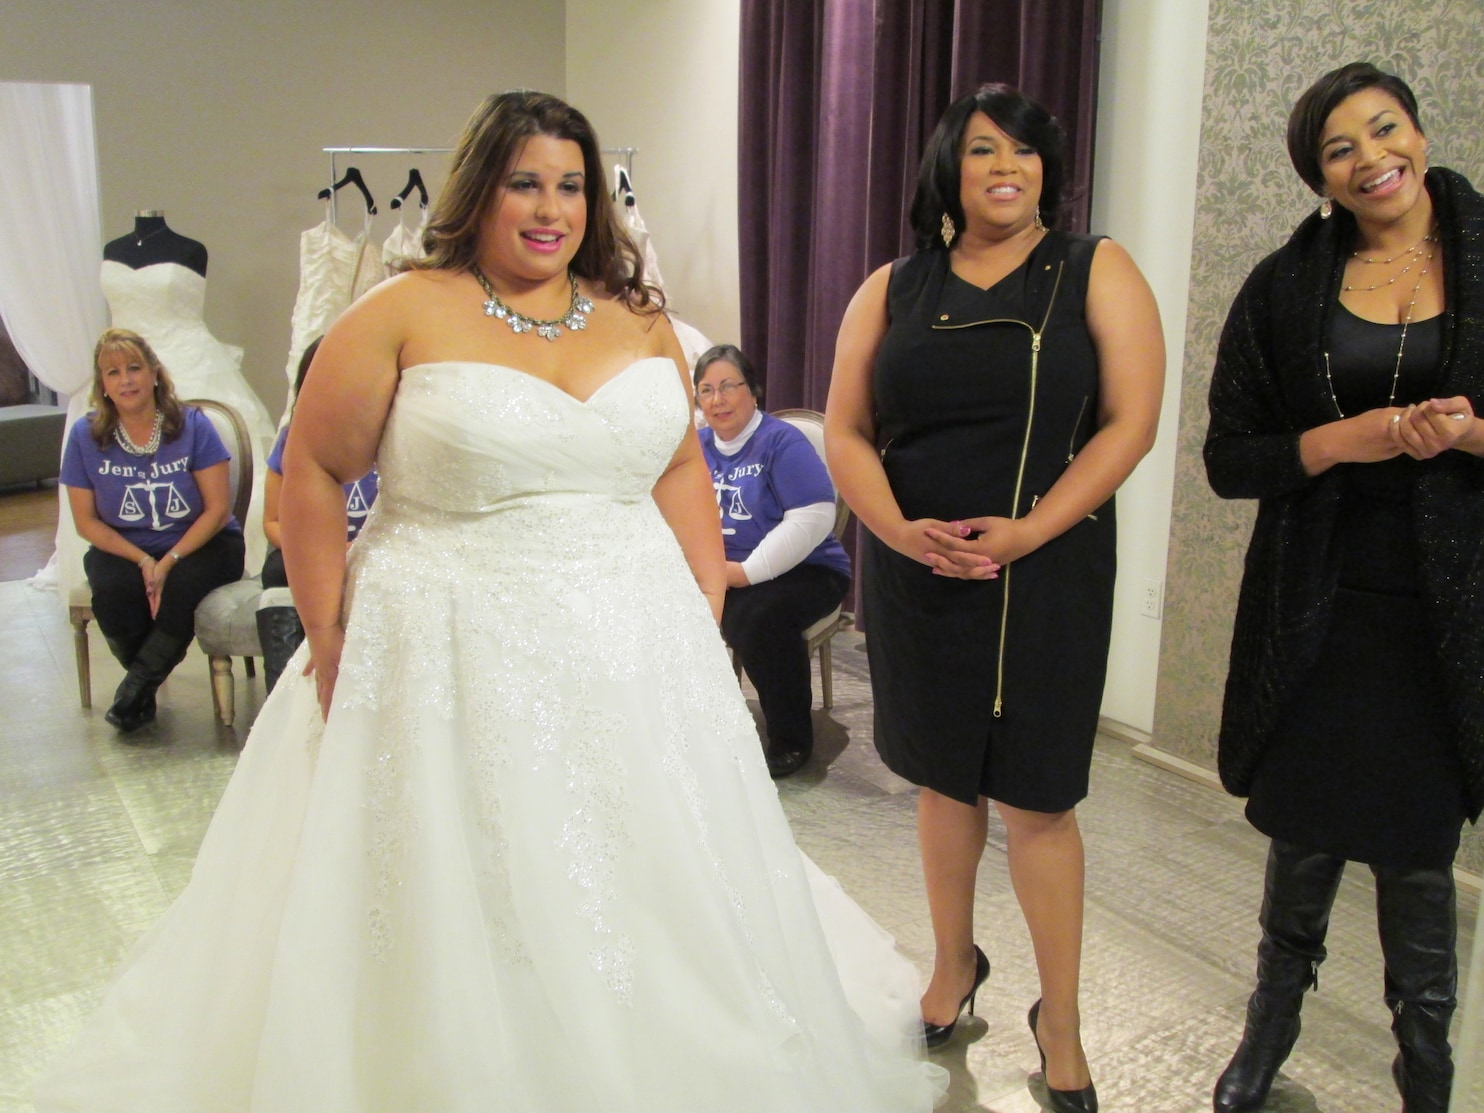 TLC features local salon in new show Curvy Brides  The